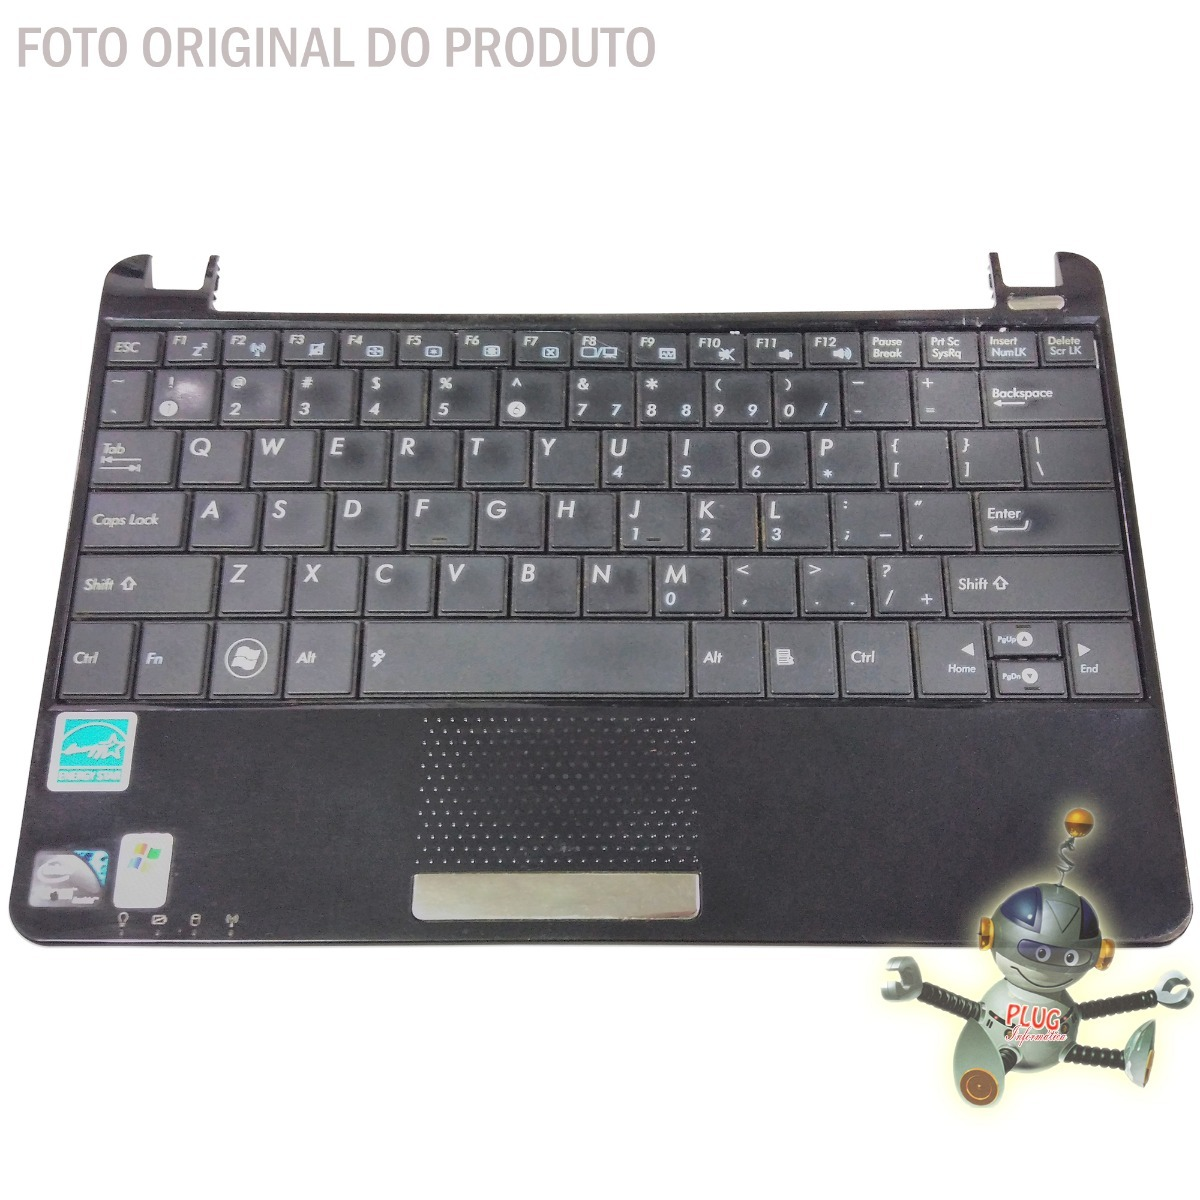 ASUS 1001PX WINDOWS 8 DRIVER DOWNLOAD